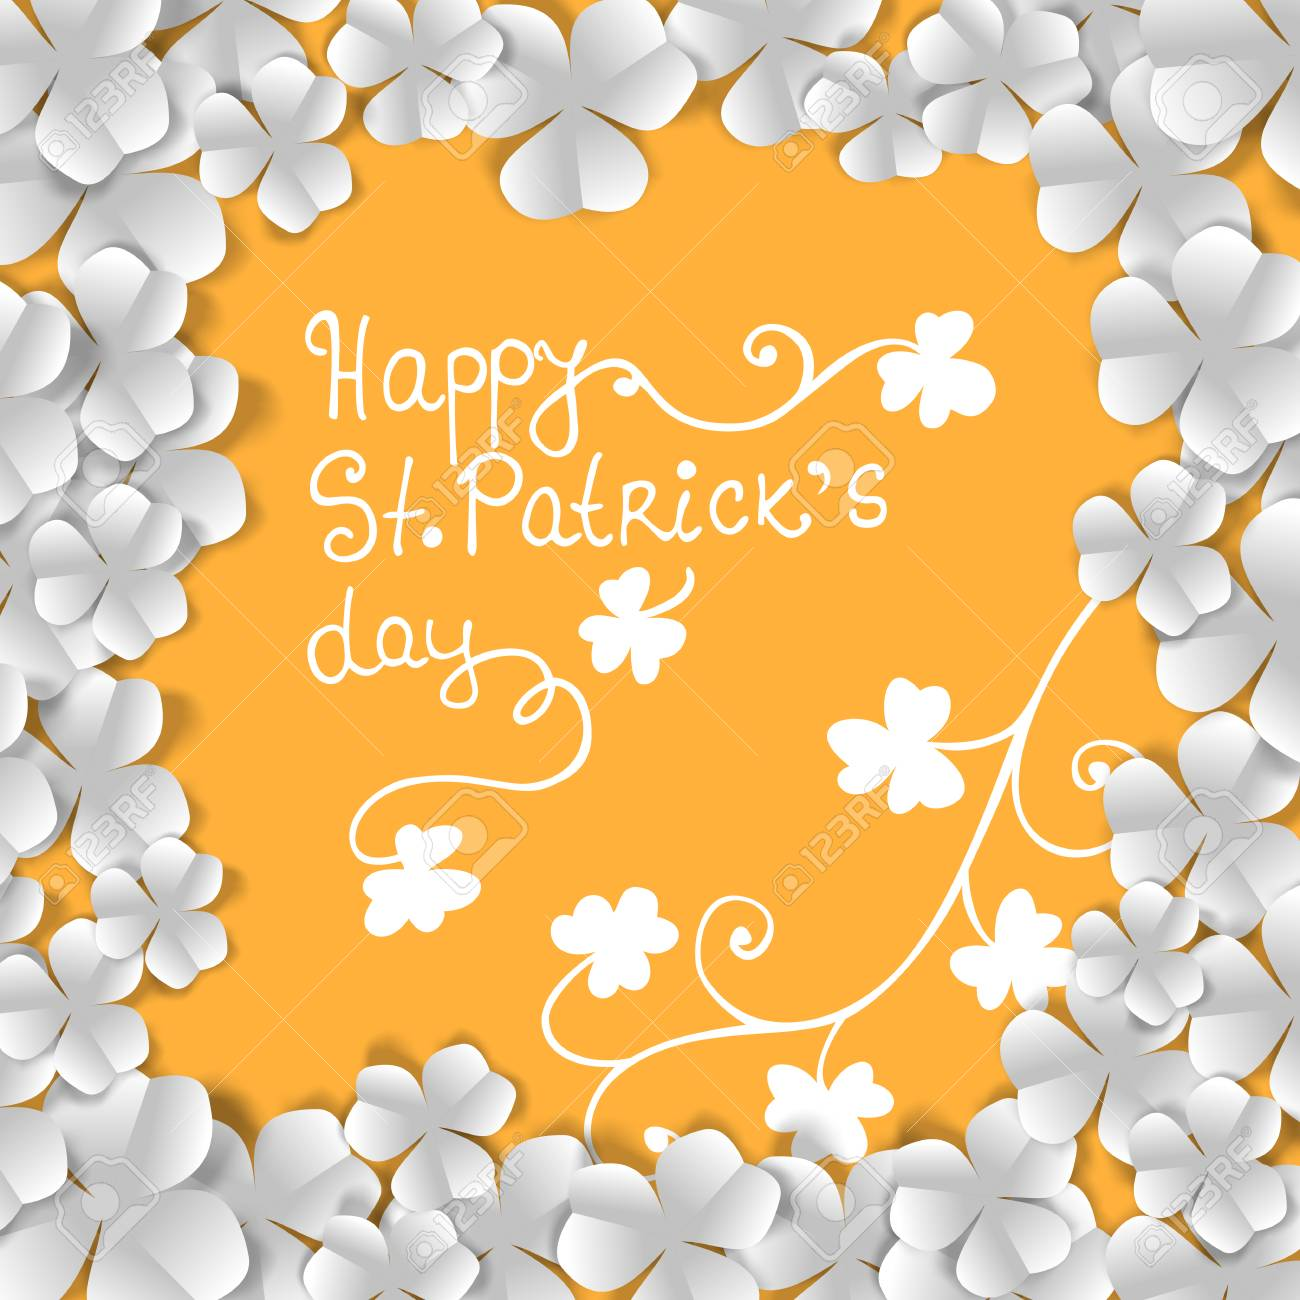 St. Patrick day card, frame made of white paper clovers and floral ornaments on orange background Stock Vector - 25999635